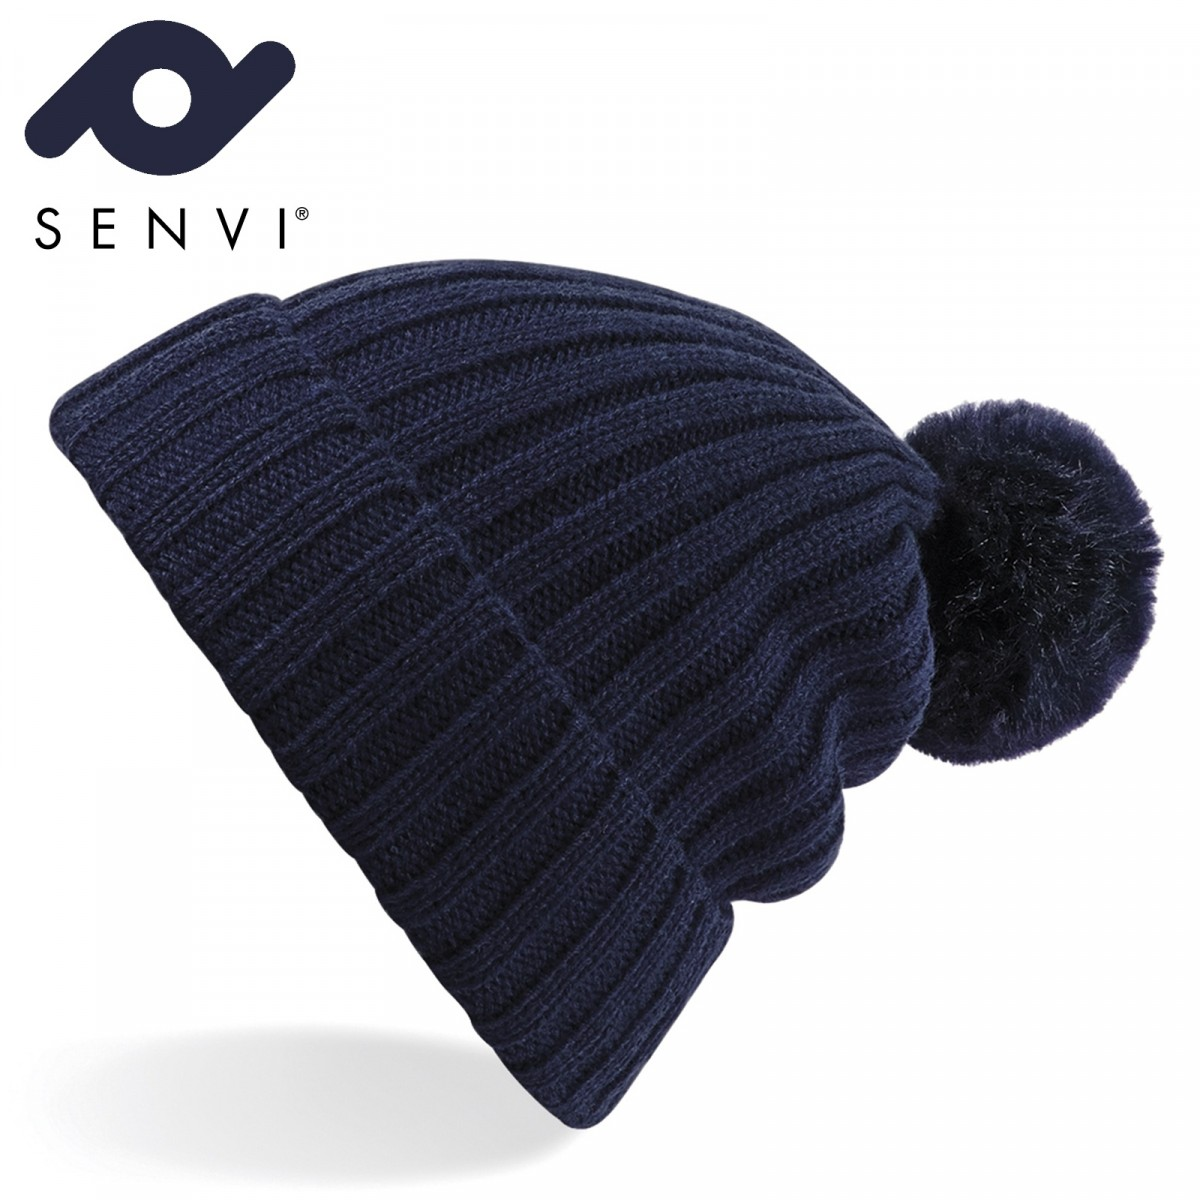 Senvi Arosa Fur Pom Pom Beanie Blauw (One size fits all)